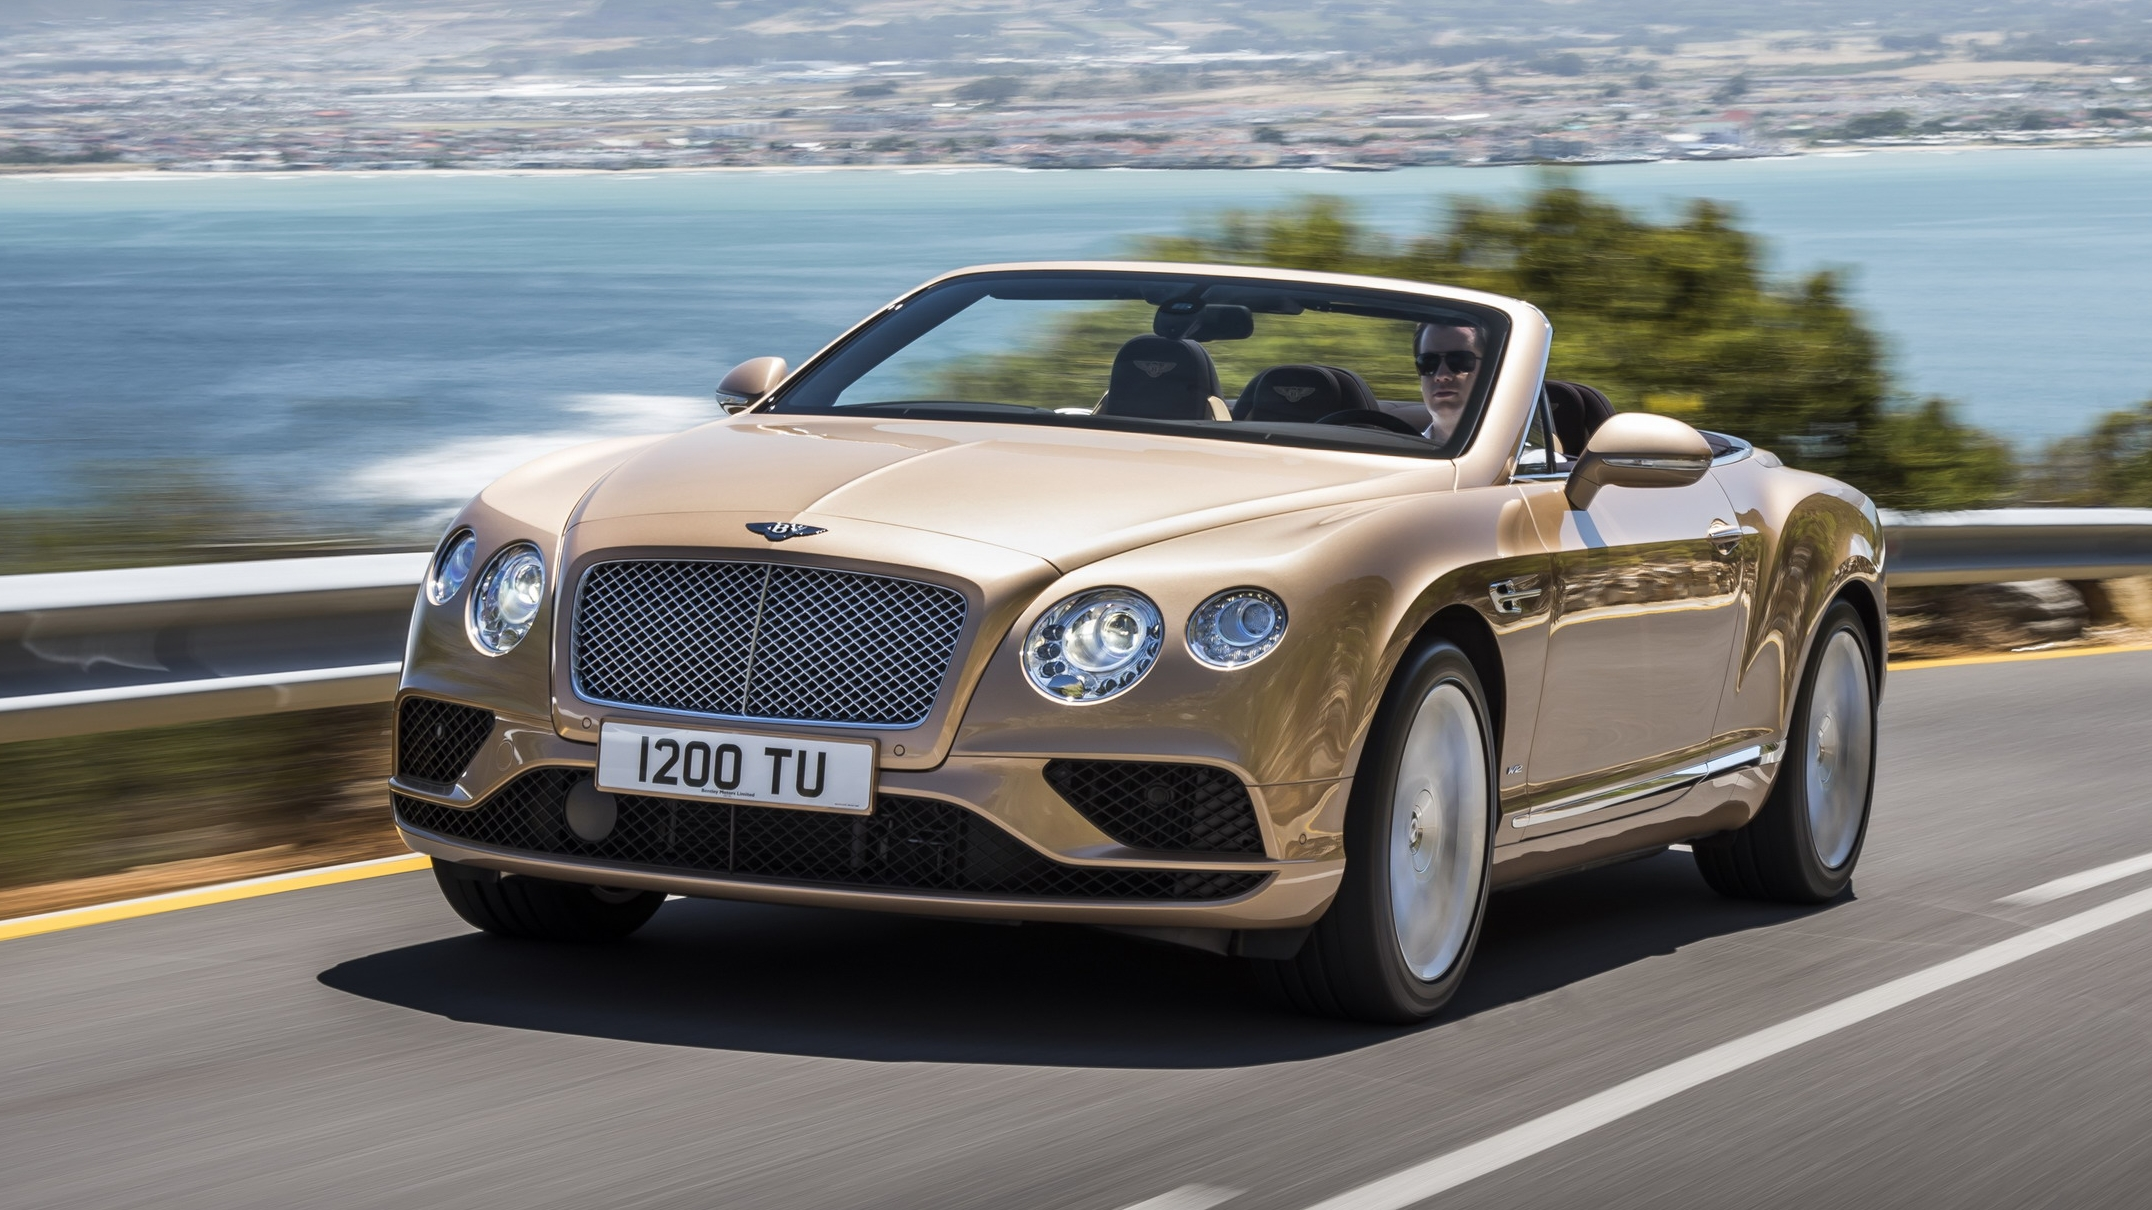 all exterior hp editor gt gran cars new is bentley message a turismo continental extraordinare